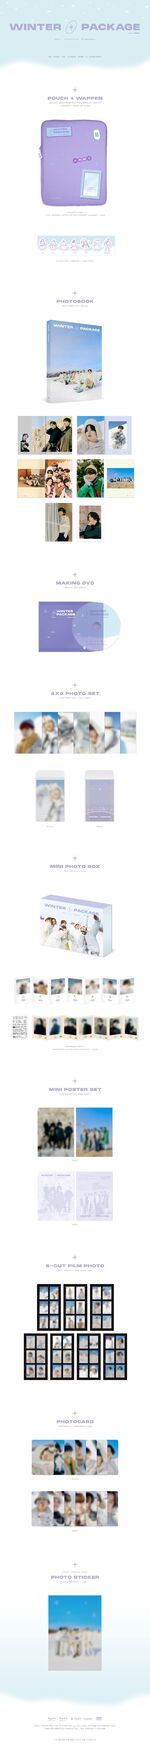 BTS Winter Package 2021 Contents (1)